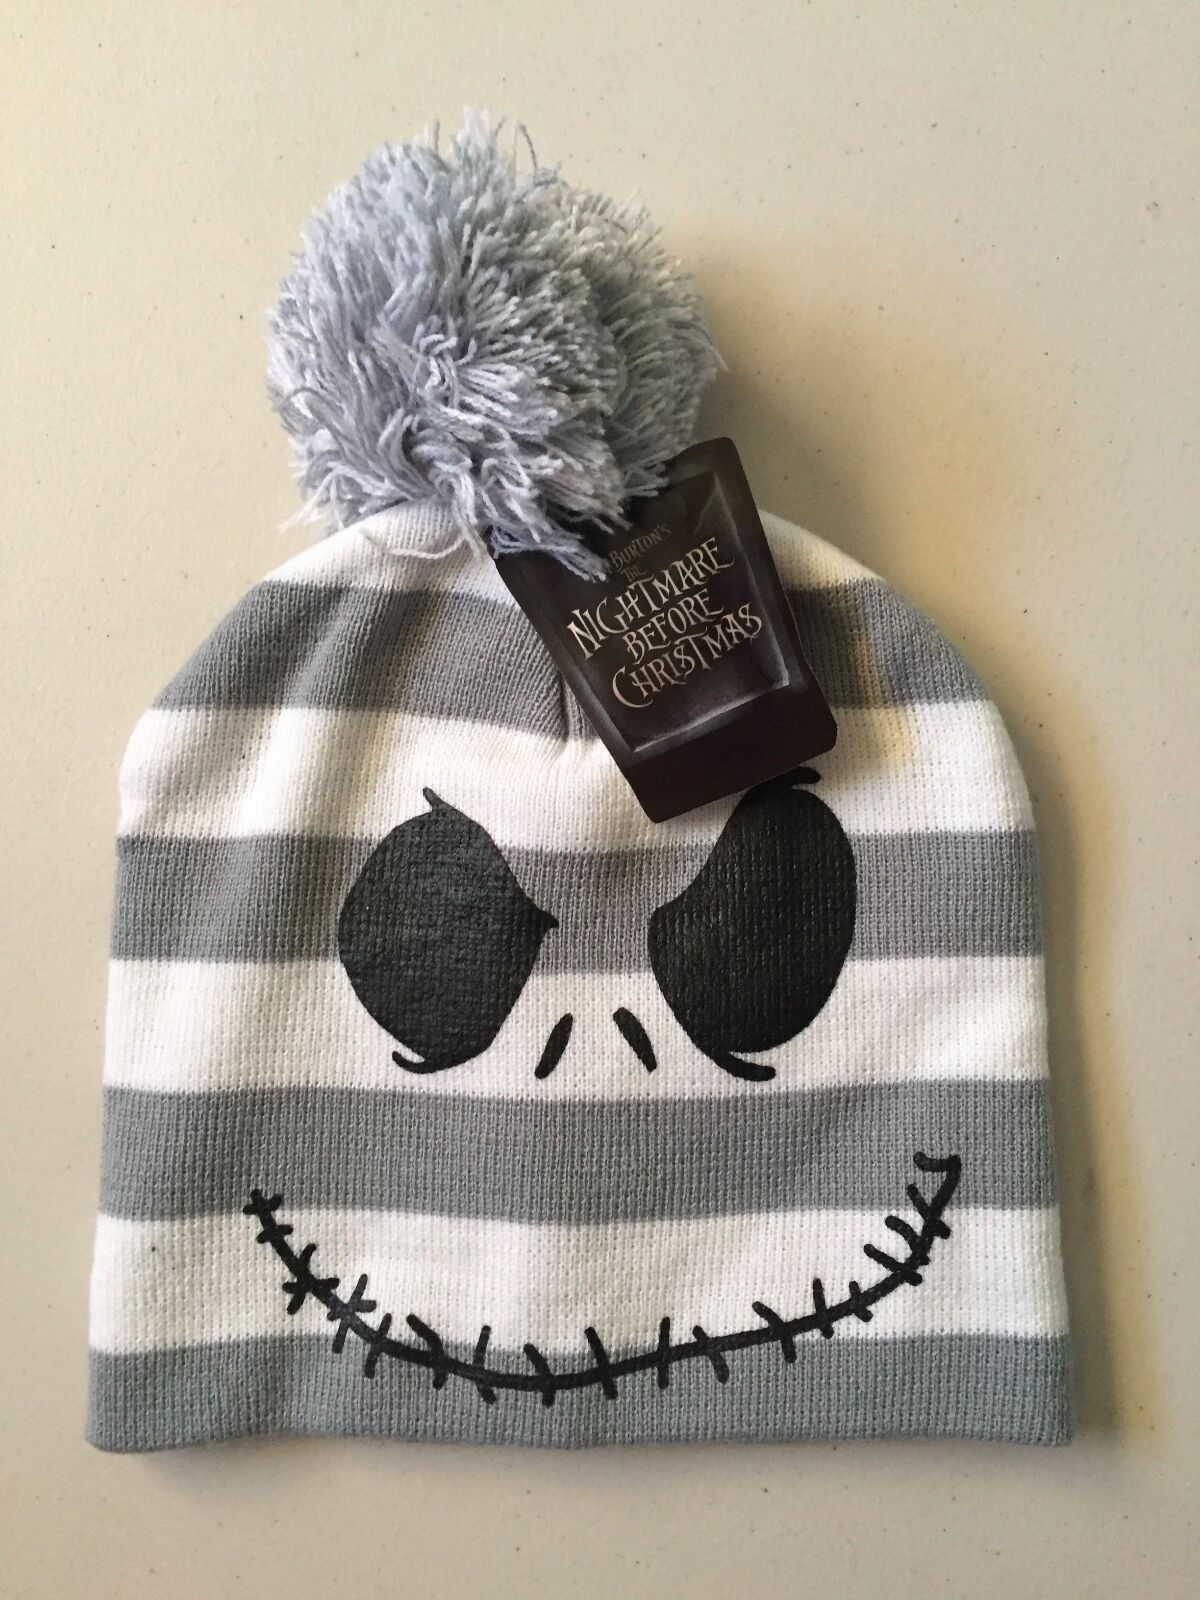 disney nightmare before christmas beanie hat osfm jack skellington 1 of 2only 1 available